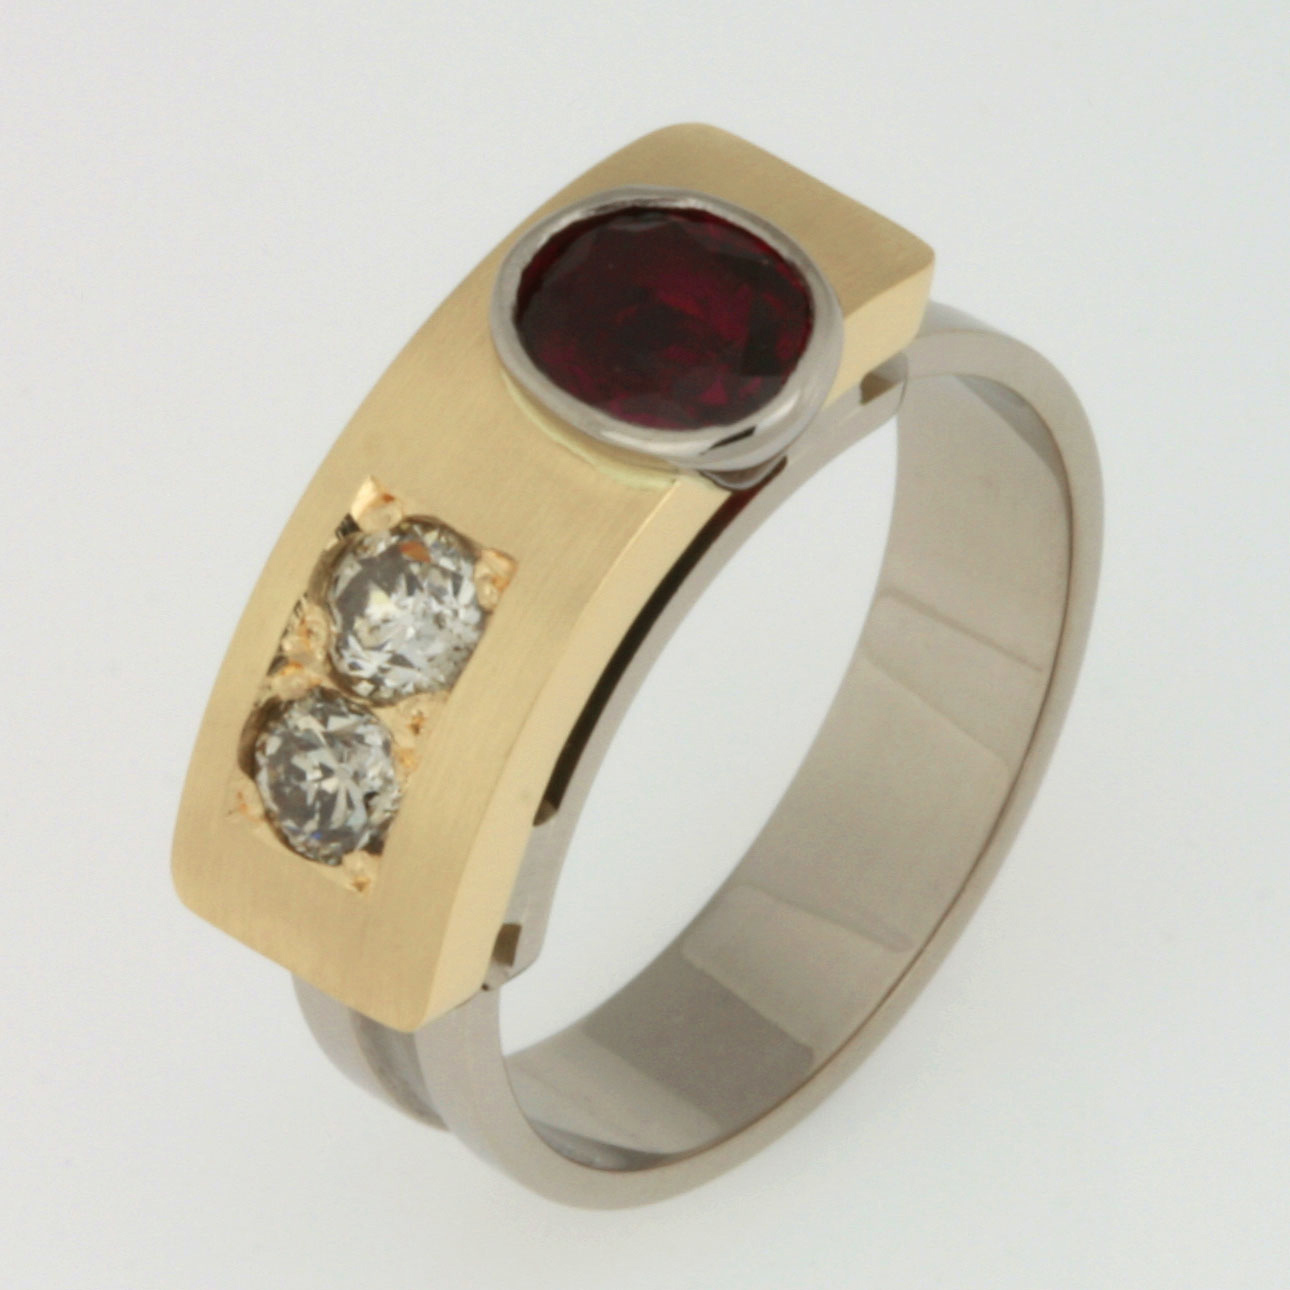 "Handmade ladies 18ct yellow gold and 18ct white gold 'Archie"" style ring featuring diamonds and an oval ruby"